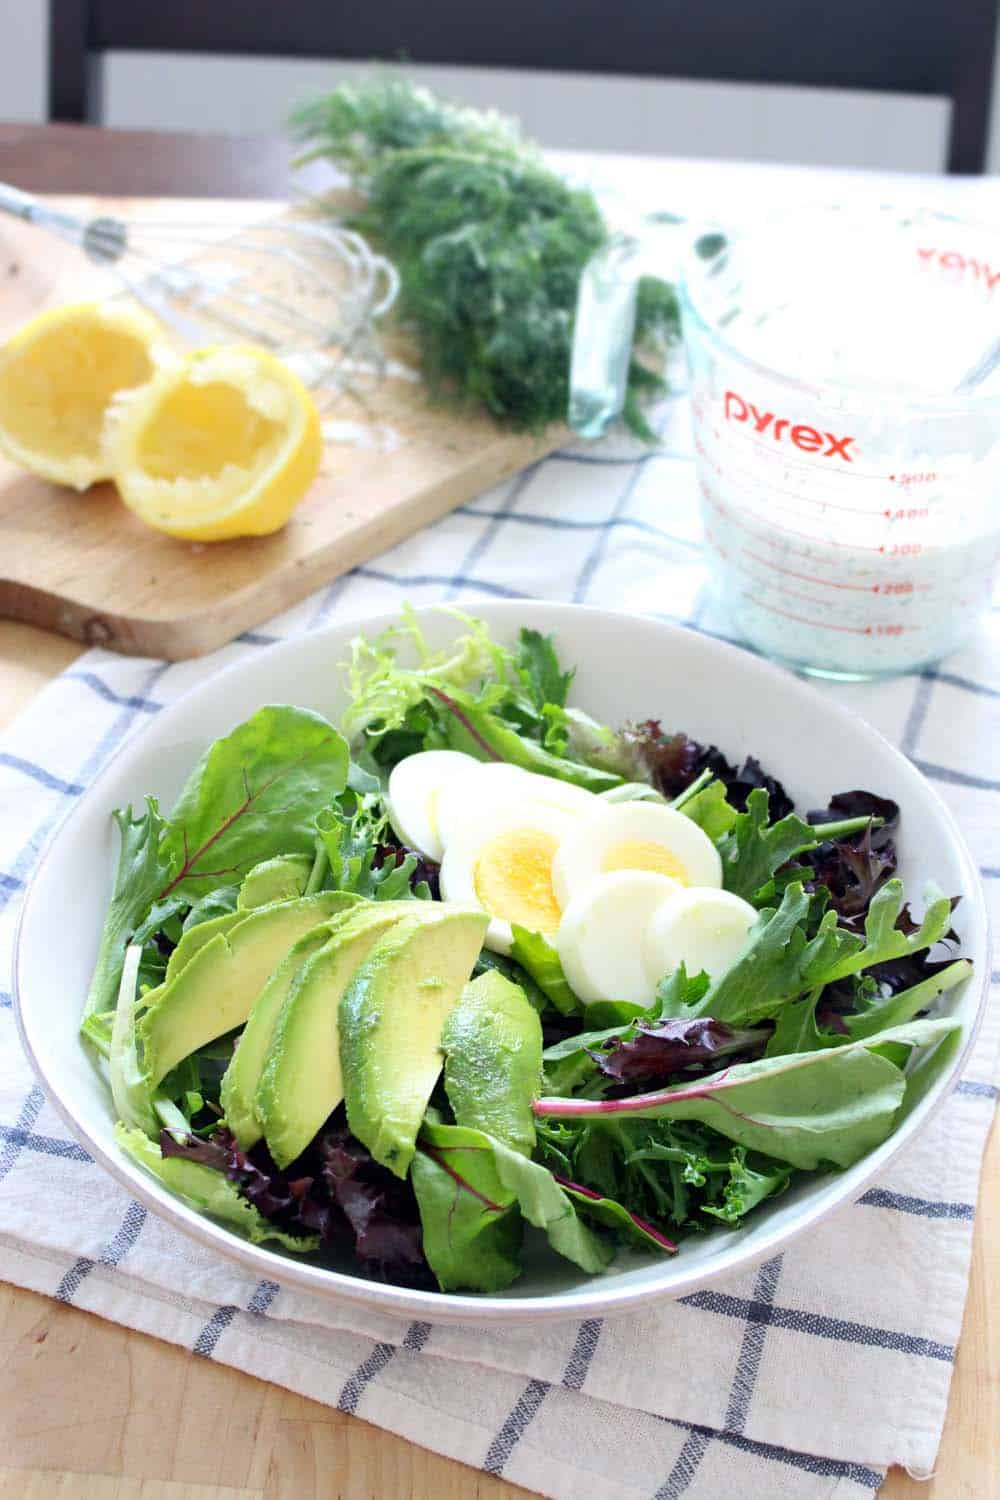 Mixed Greens Salad with Egg and Avocado | A refreshing, filling, and flavorful salad with a simple homemade dressing. Great to take to work for a healthy, satisfying lunch-on-the-go!